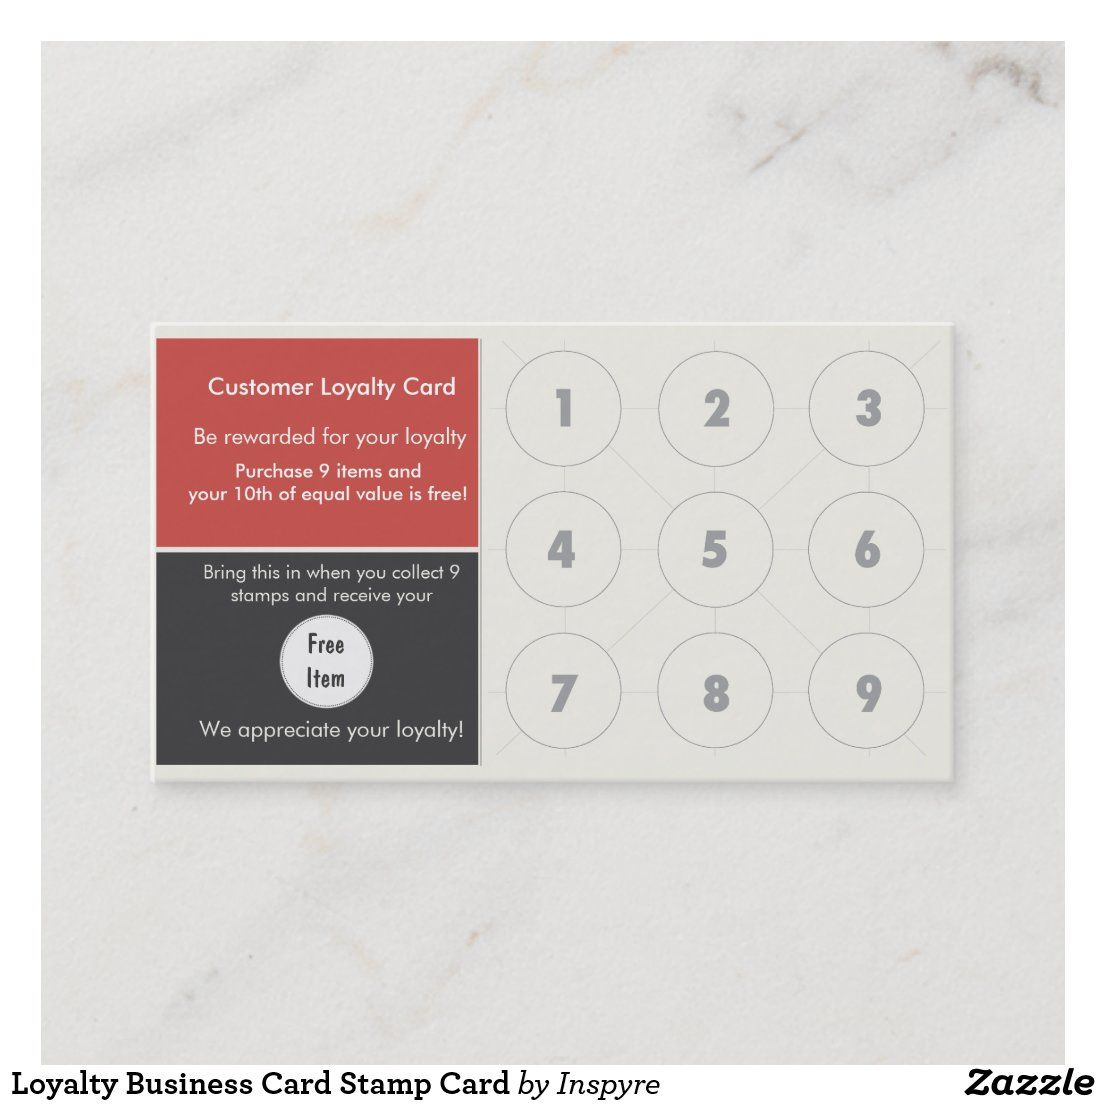 Loyalty Business Card Stamp Card Zazzle Com In 2021 Loyalty Card Template Customer Loyalty Cards Stamped Cards